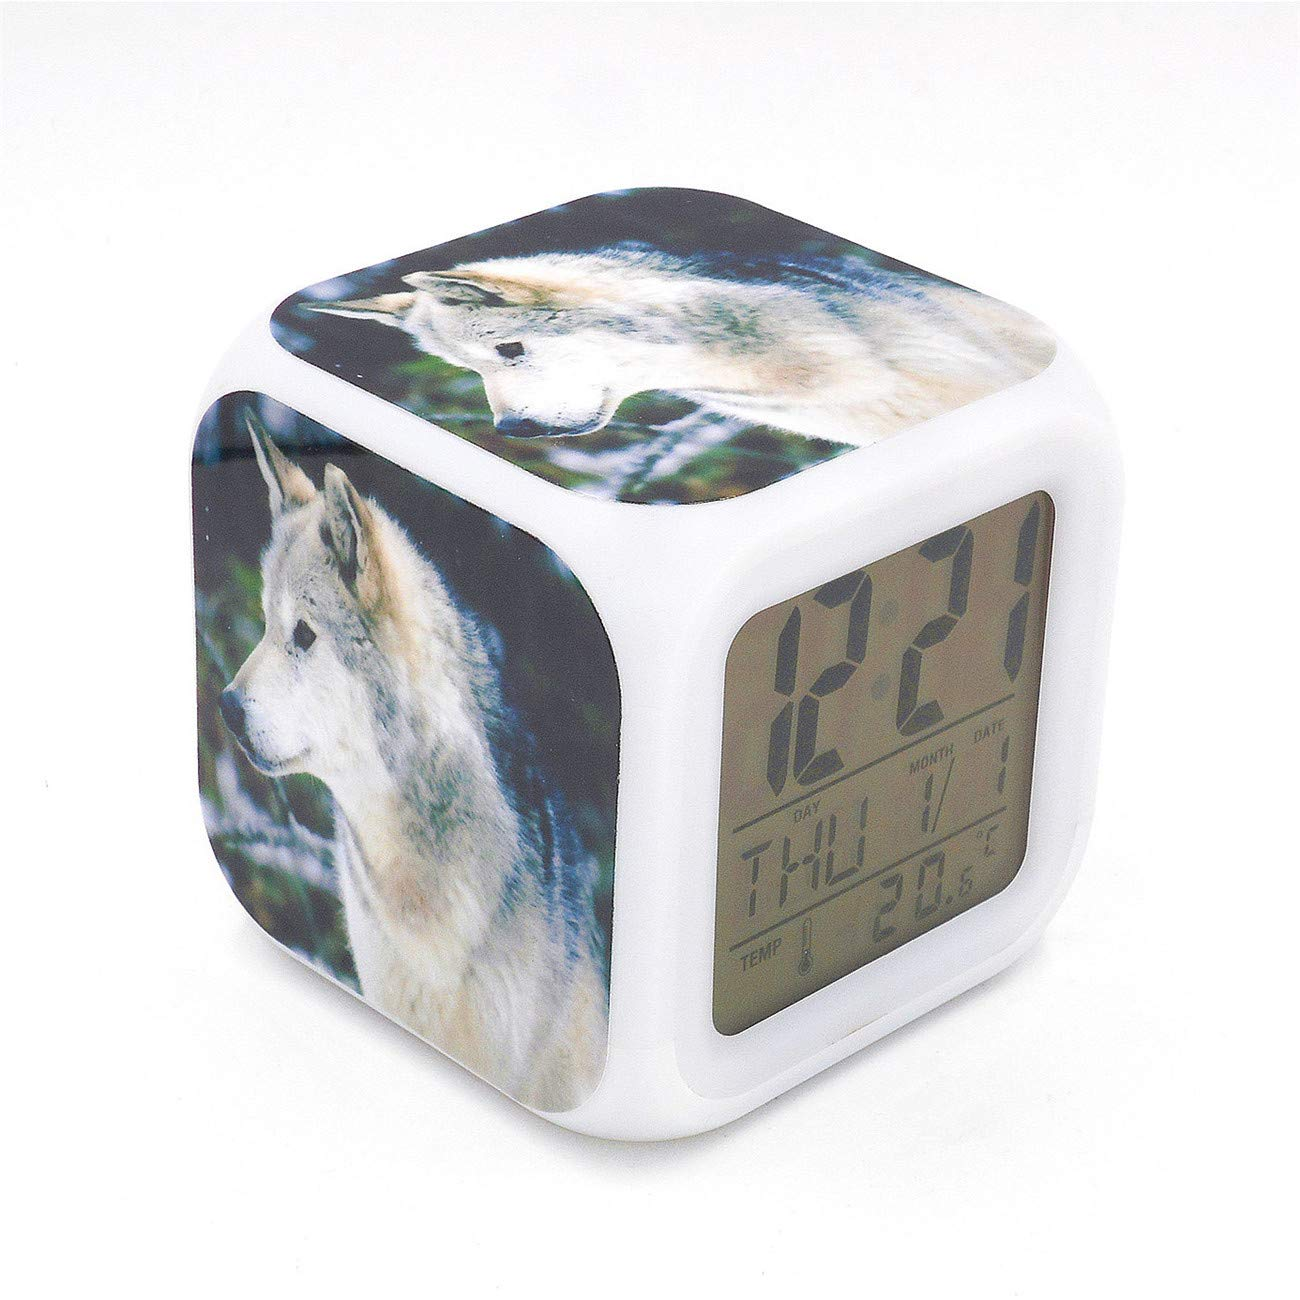 EGS White Wolf Animal Digital Alarm Clock Desk Table Led Alarm Clock Creative Personalized Multifunctional Battery Alarm Clock Special Toy Gift for Unisex Kids Adults